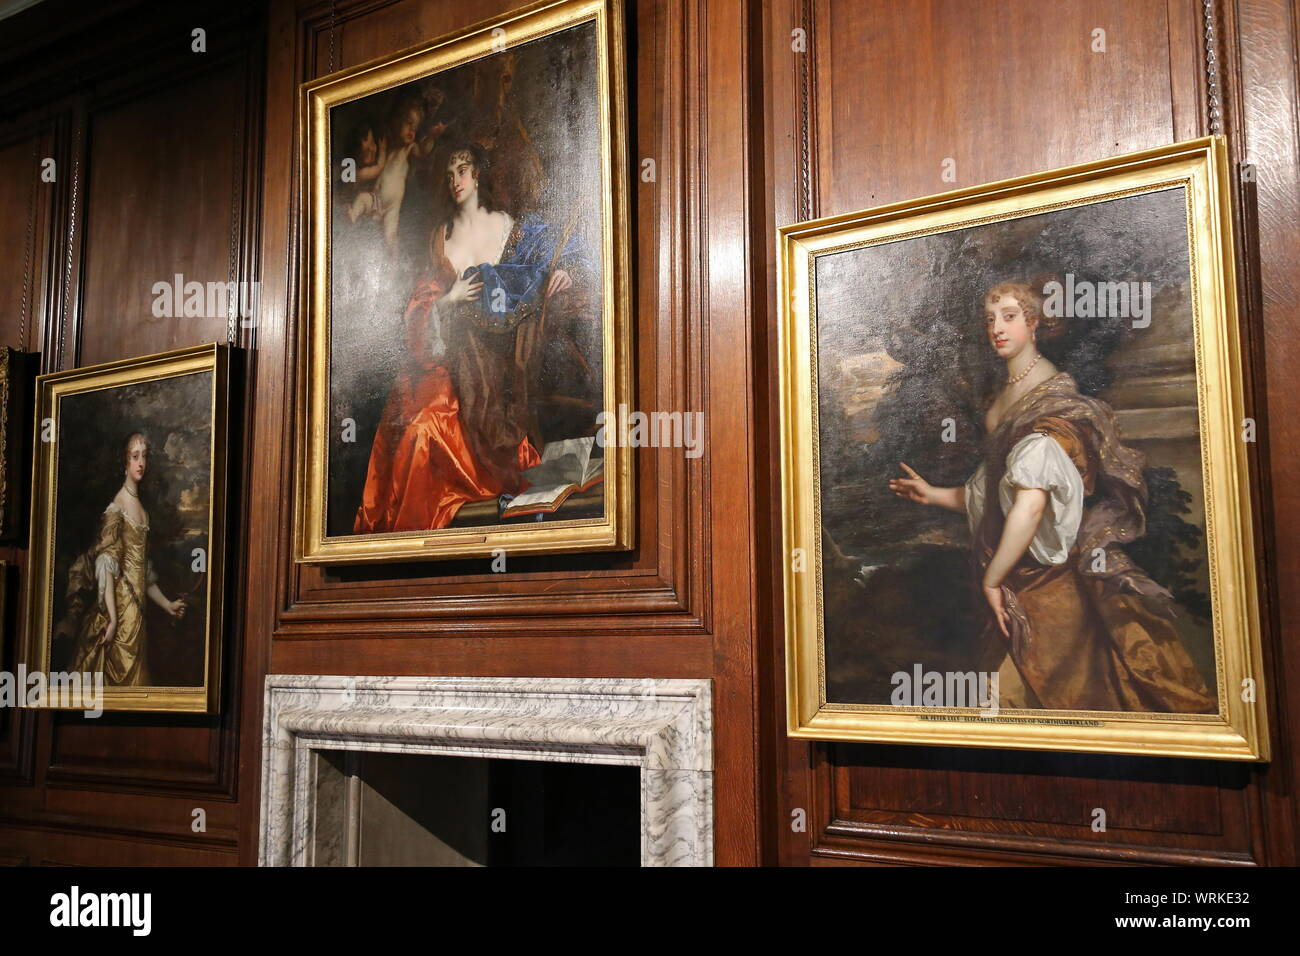 'Windsor Beauties' by Sir Peter Lely, Communication Gallery, Hampton Court Palace, East Molesey, Surrey, England, Great Britain, UK, Europe Stock Photo